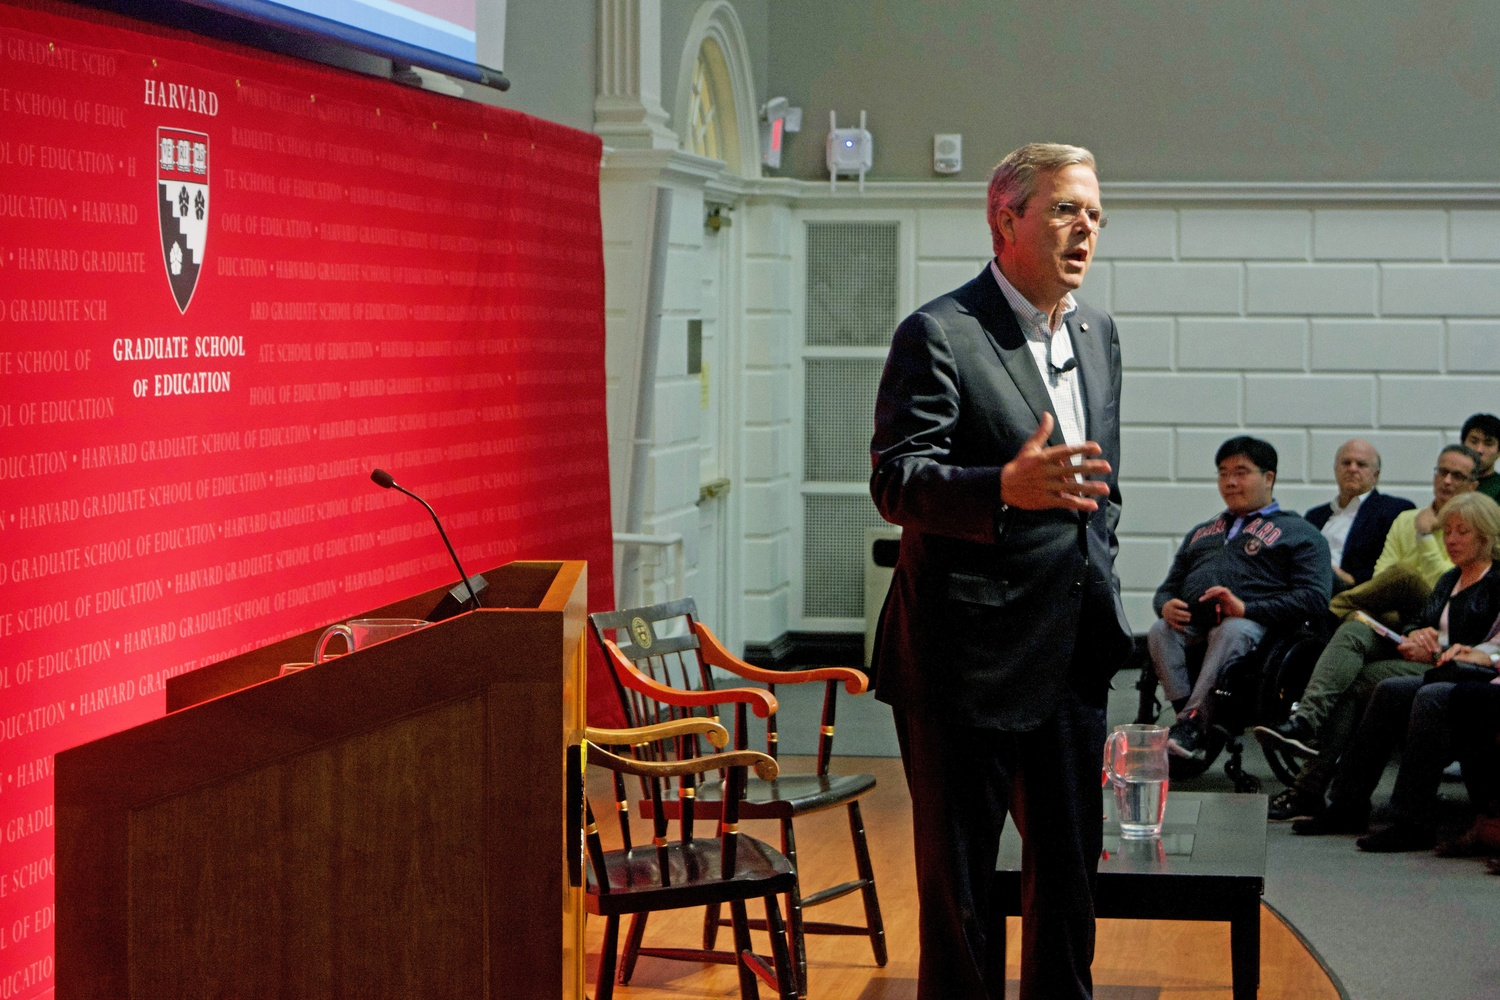 Jeb Bush shares his thoughts on education reform during an Askwith Forum at the Harvard Graduate School of Education.